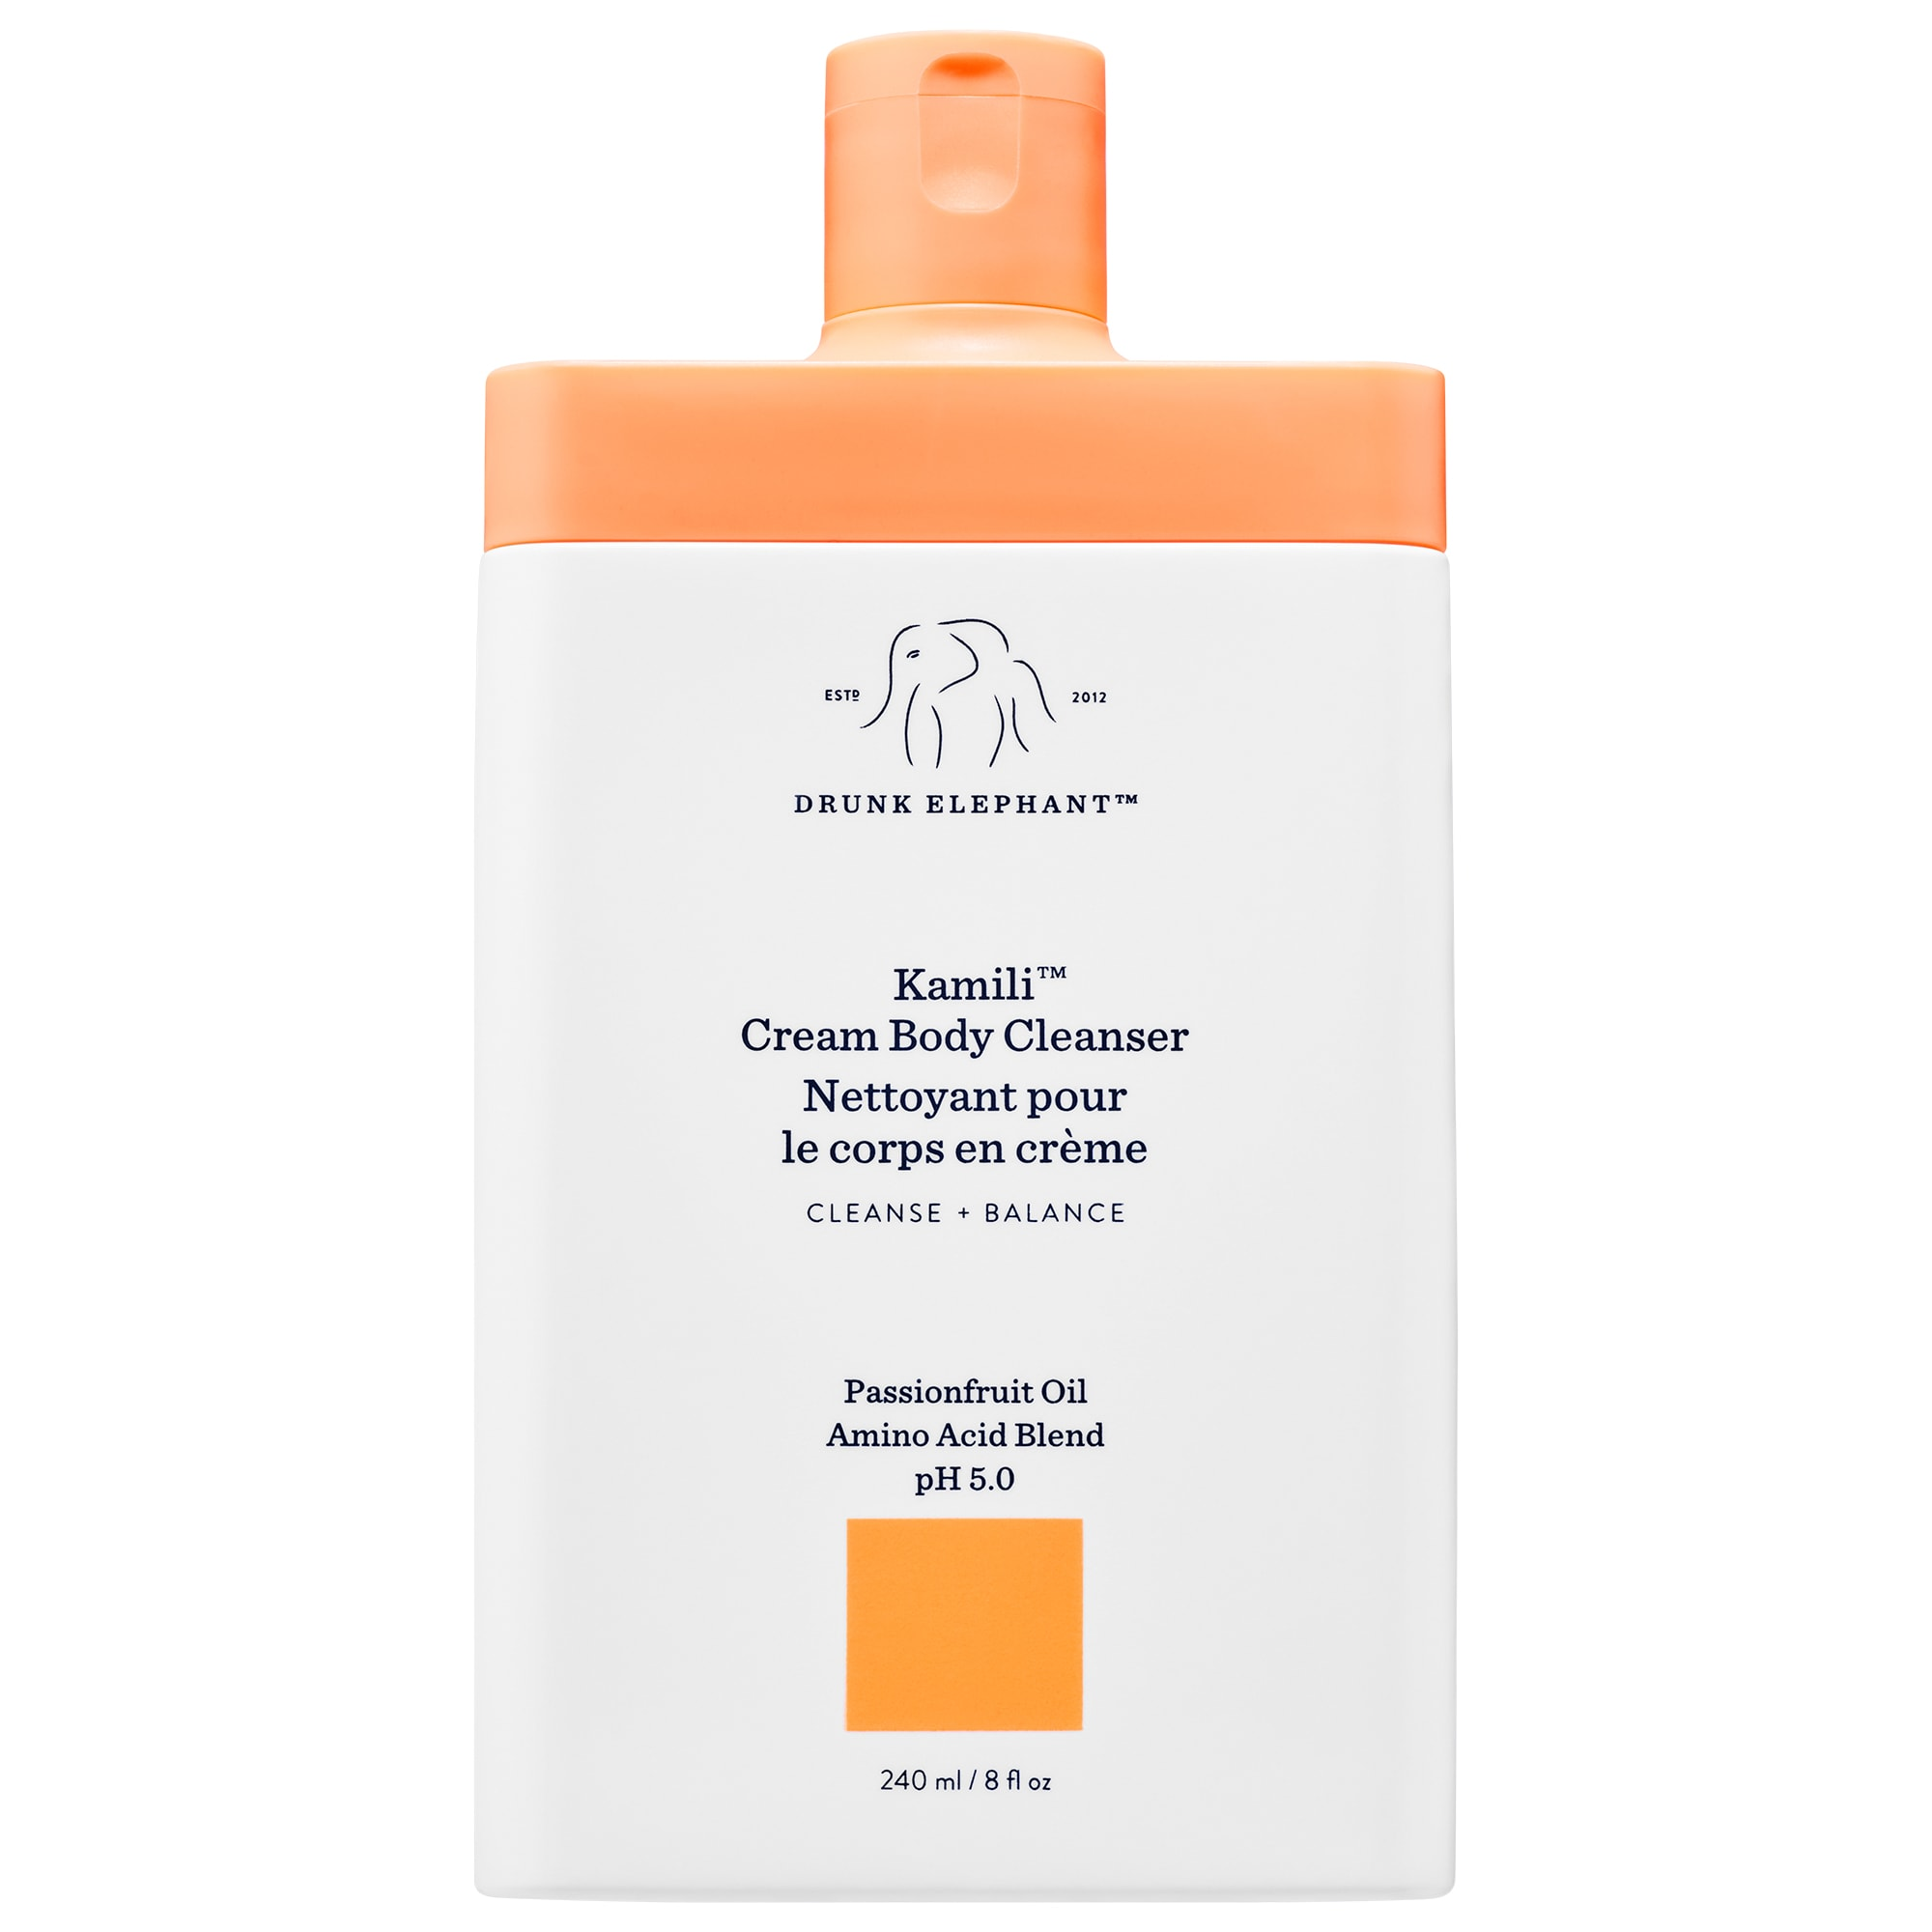 Drunk Elephant - Kamili™ Cream Body Cleanser